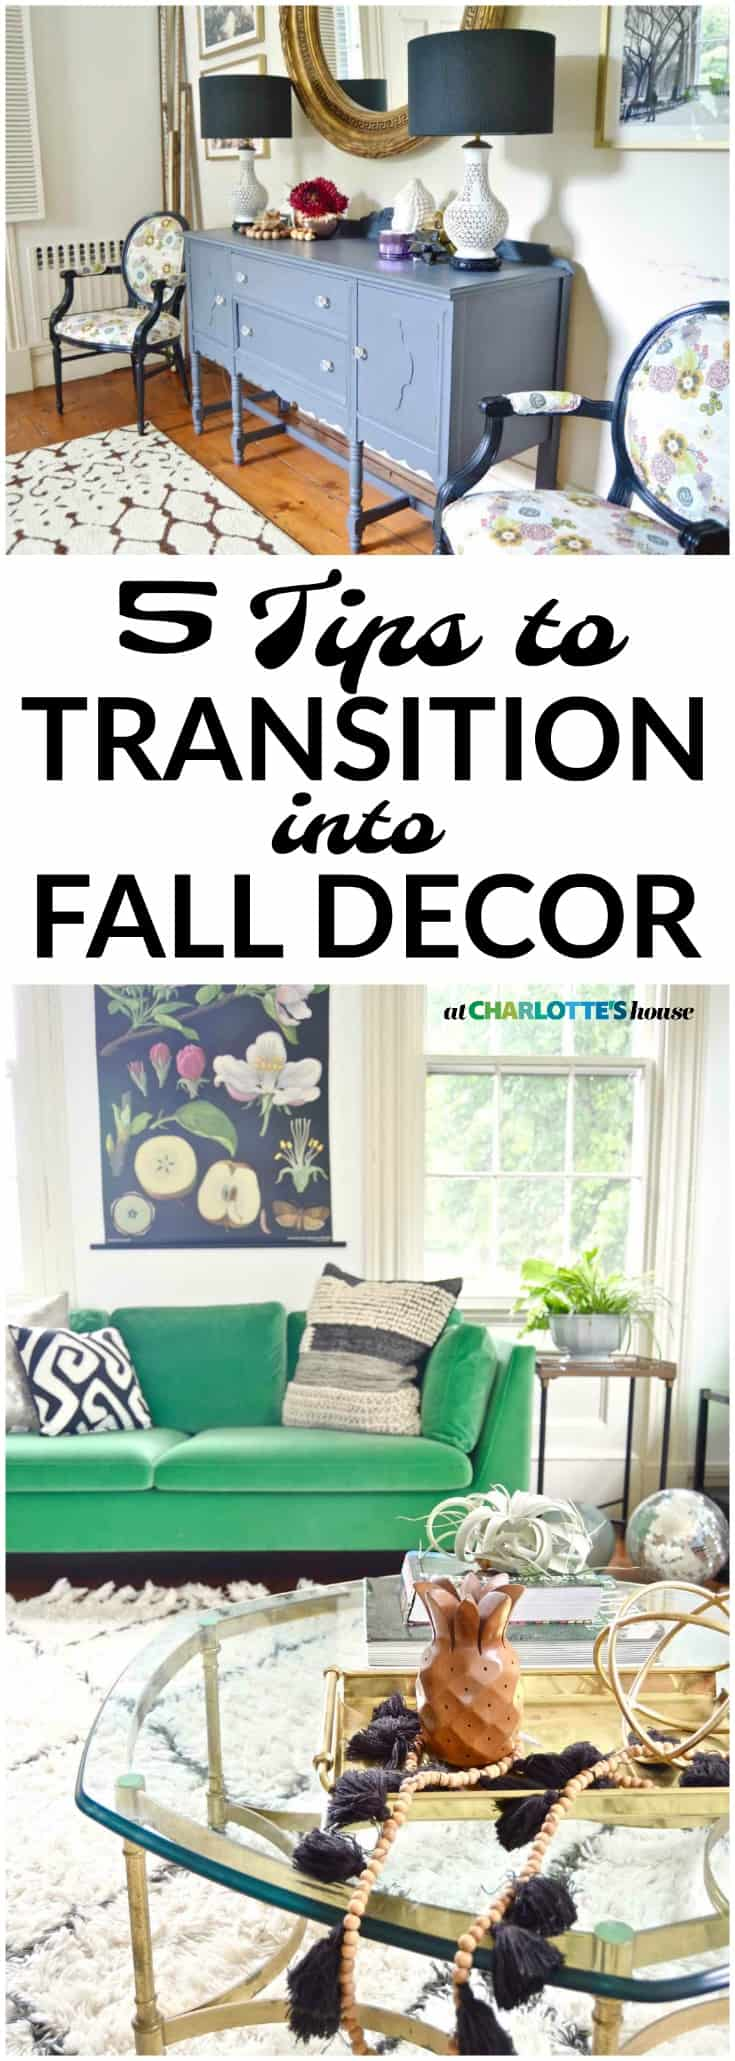 If you're not quite ready for autumn decor like pumpkins and gourds, these tips will help ease that transition from summer into fall!